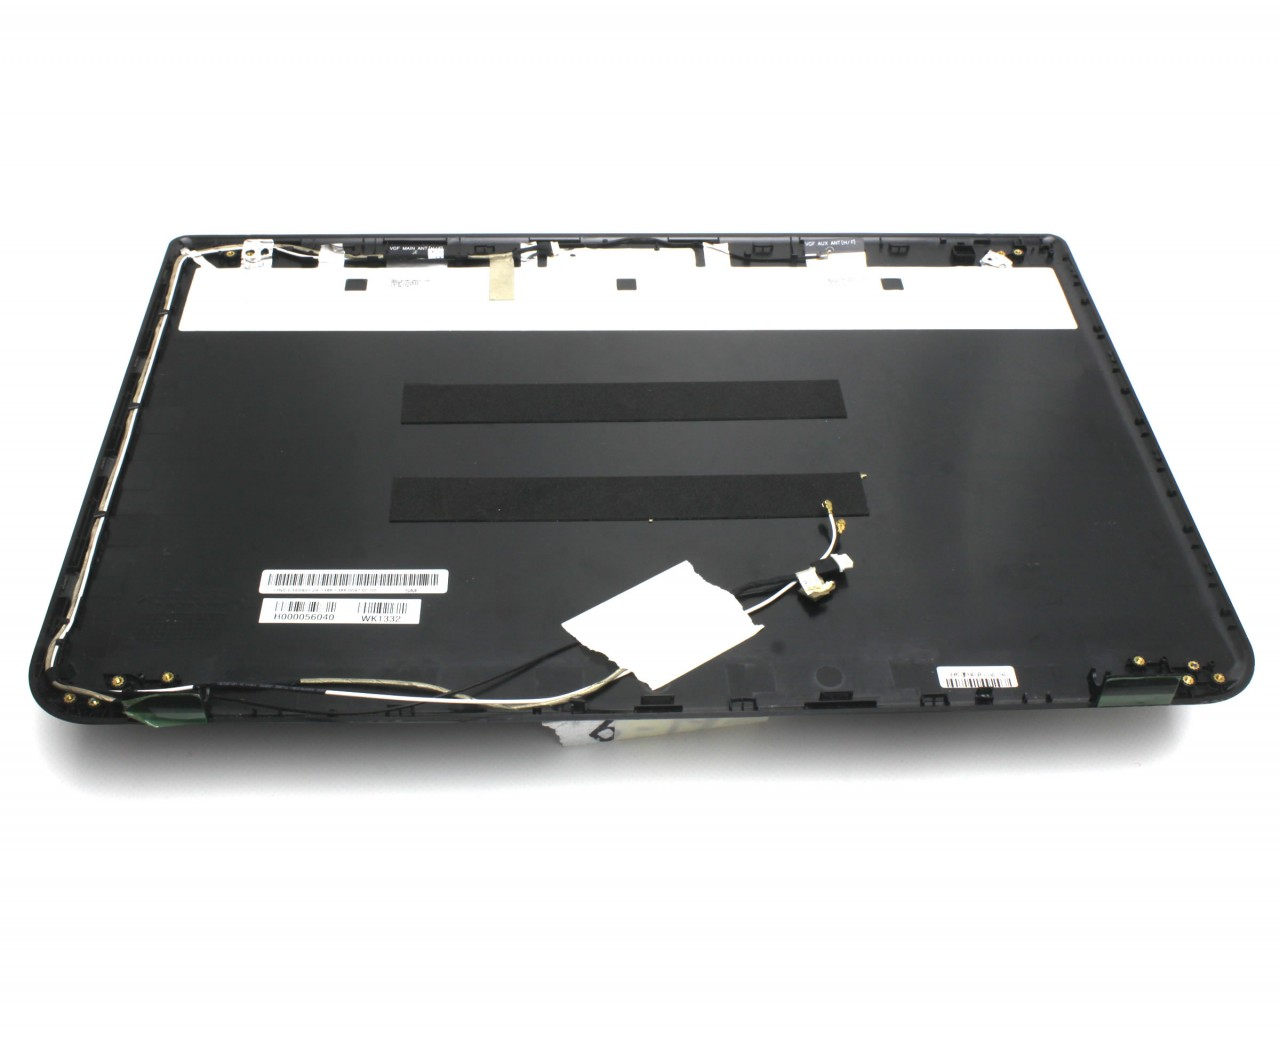 Capac Display BackCover Toshiba Satellite P50 A Carcasa Display Neagra imagine powerlaptop.ro 2021